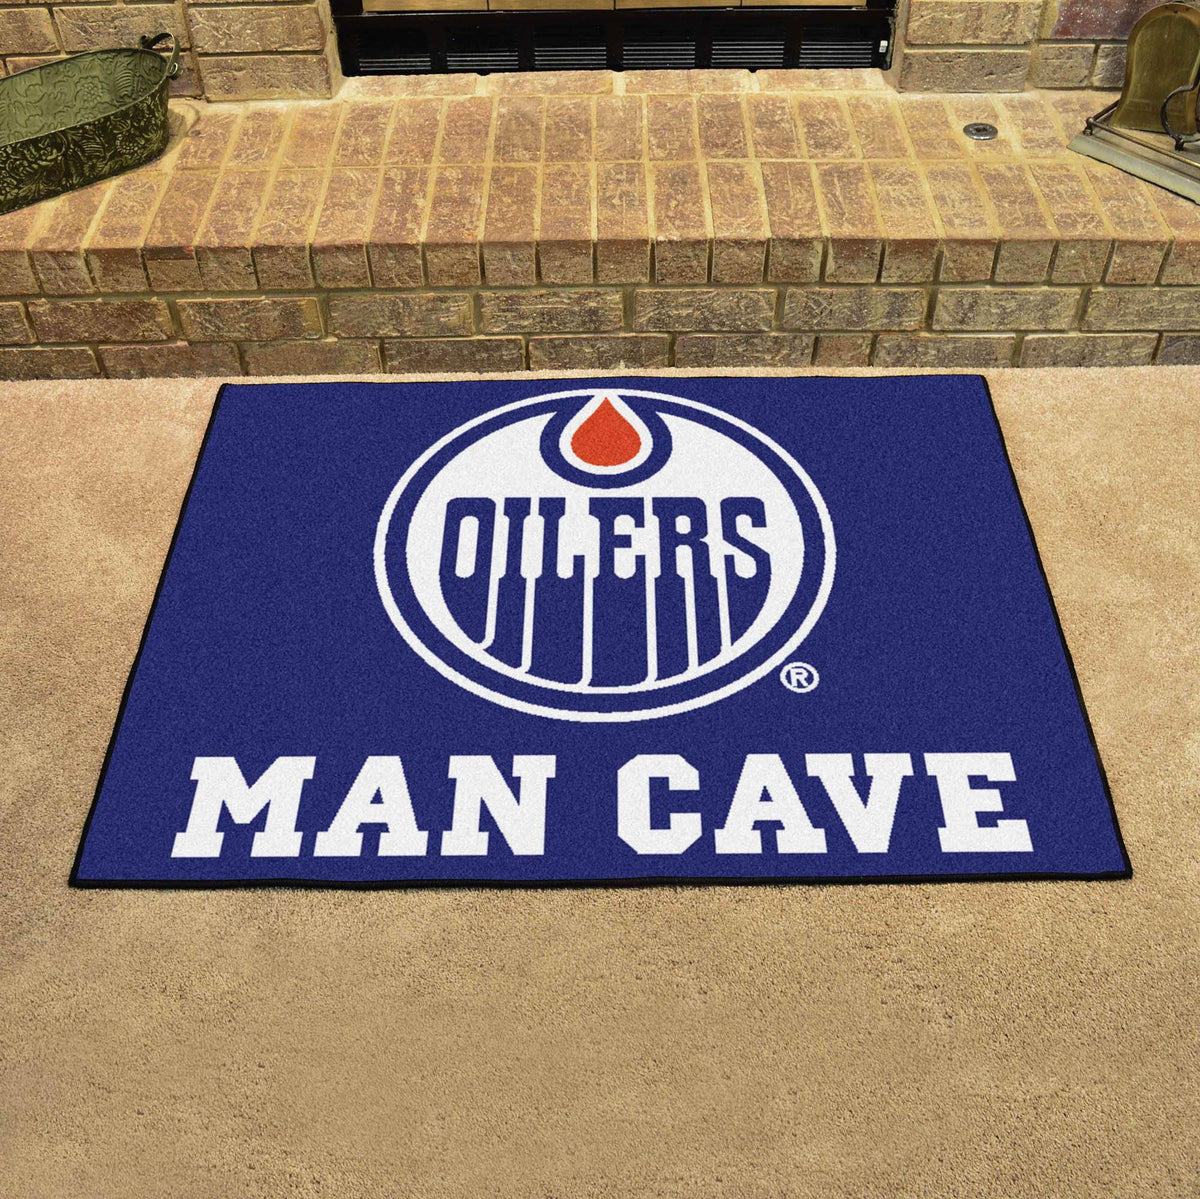 NHL - Man Cave All-Star NHL Mats, Rectangular Mats, Man Cave All-Star Mat, NHL, Home Fan Mats Edmonton Oilers